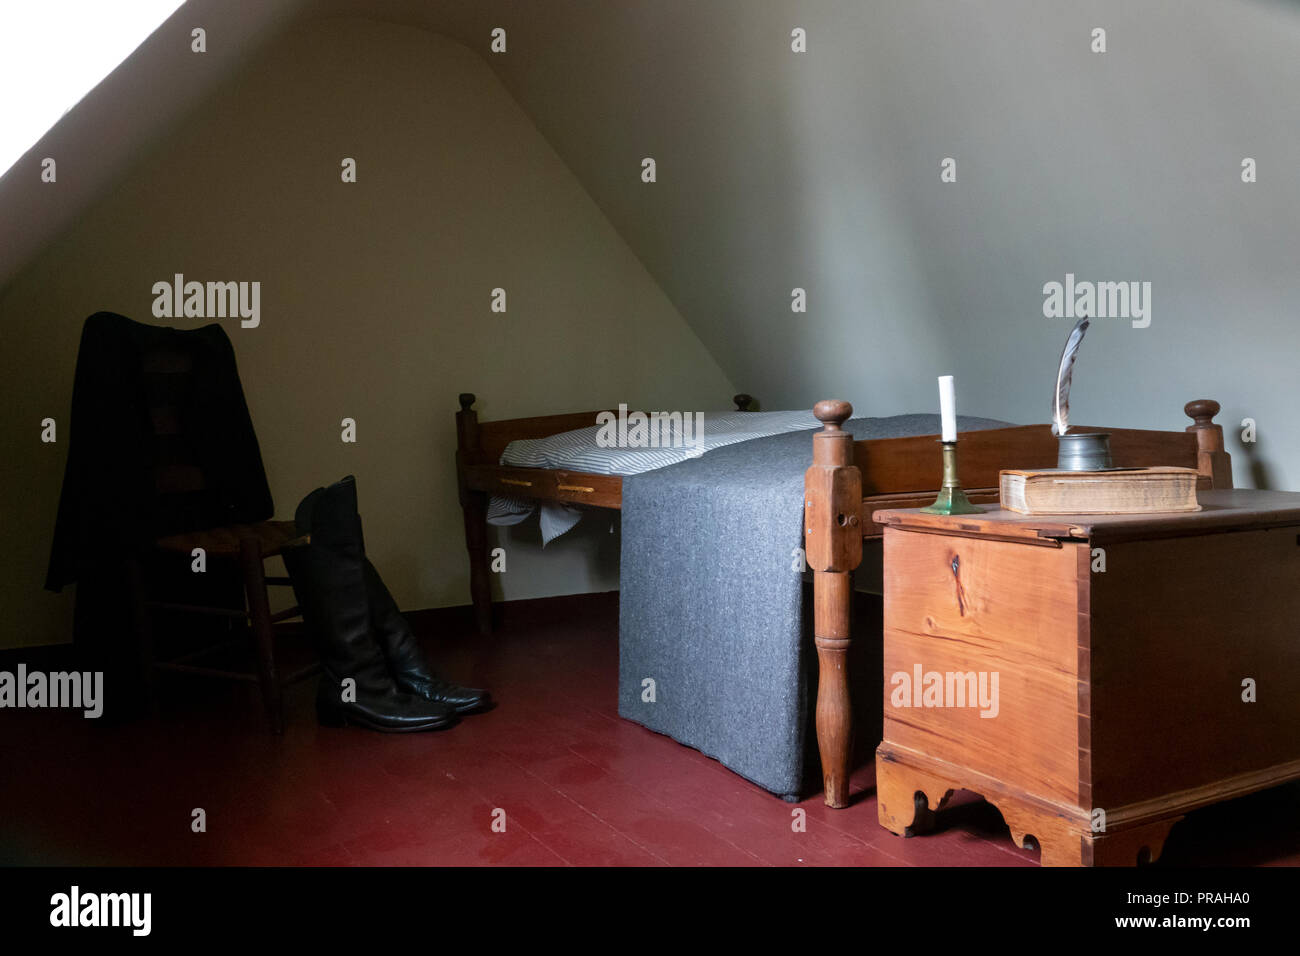 USA Maryland Baltimore The Edgar Allen Poe House and Museum The attic bedroom of Poe - Stock Image